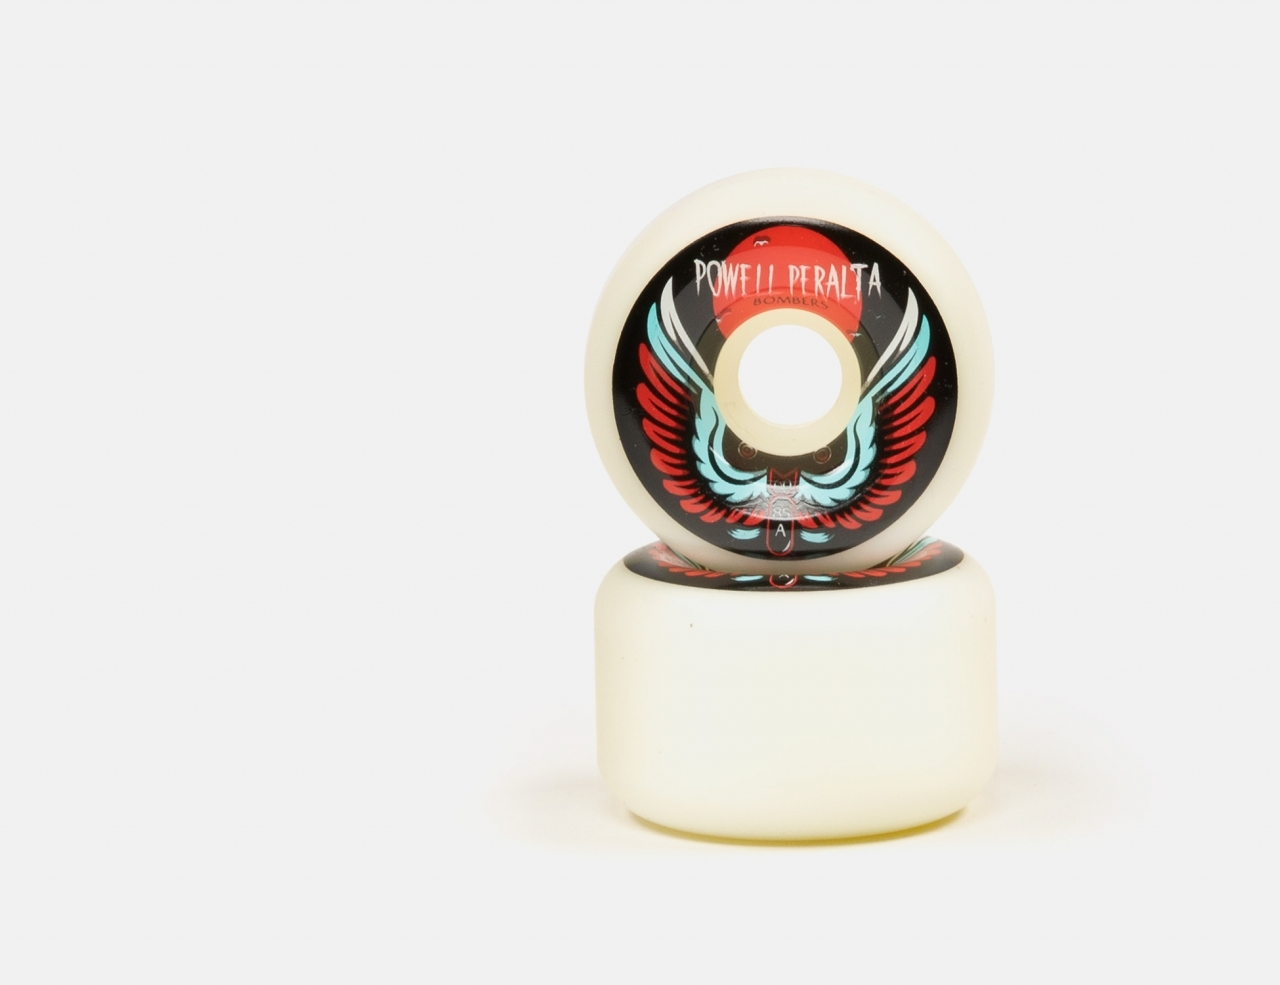 Powell Peralta Bombers 3 60mm 85A Wheels